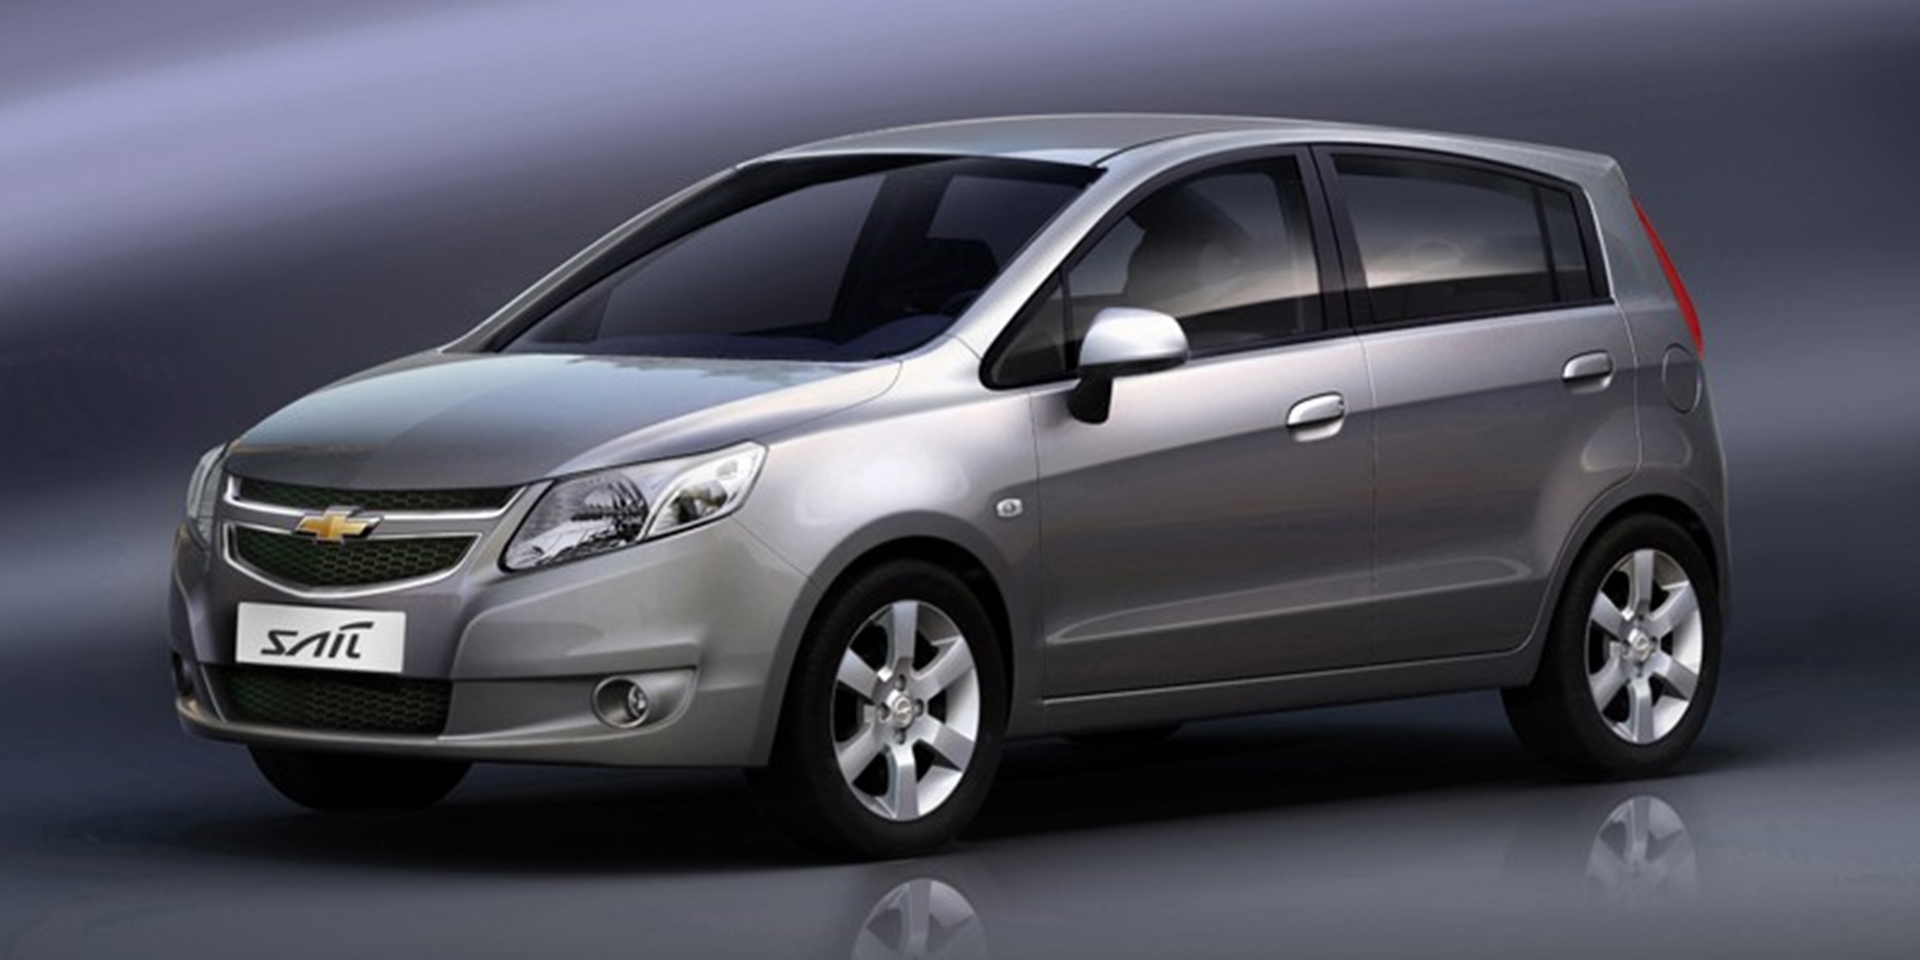 Chevrolet Sail Hatchback 2012